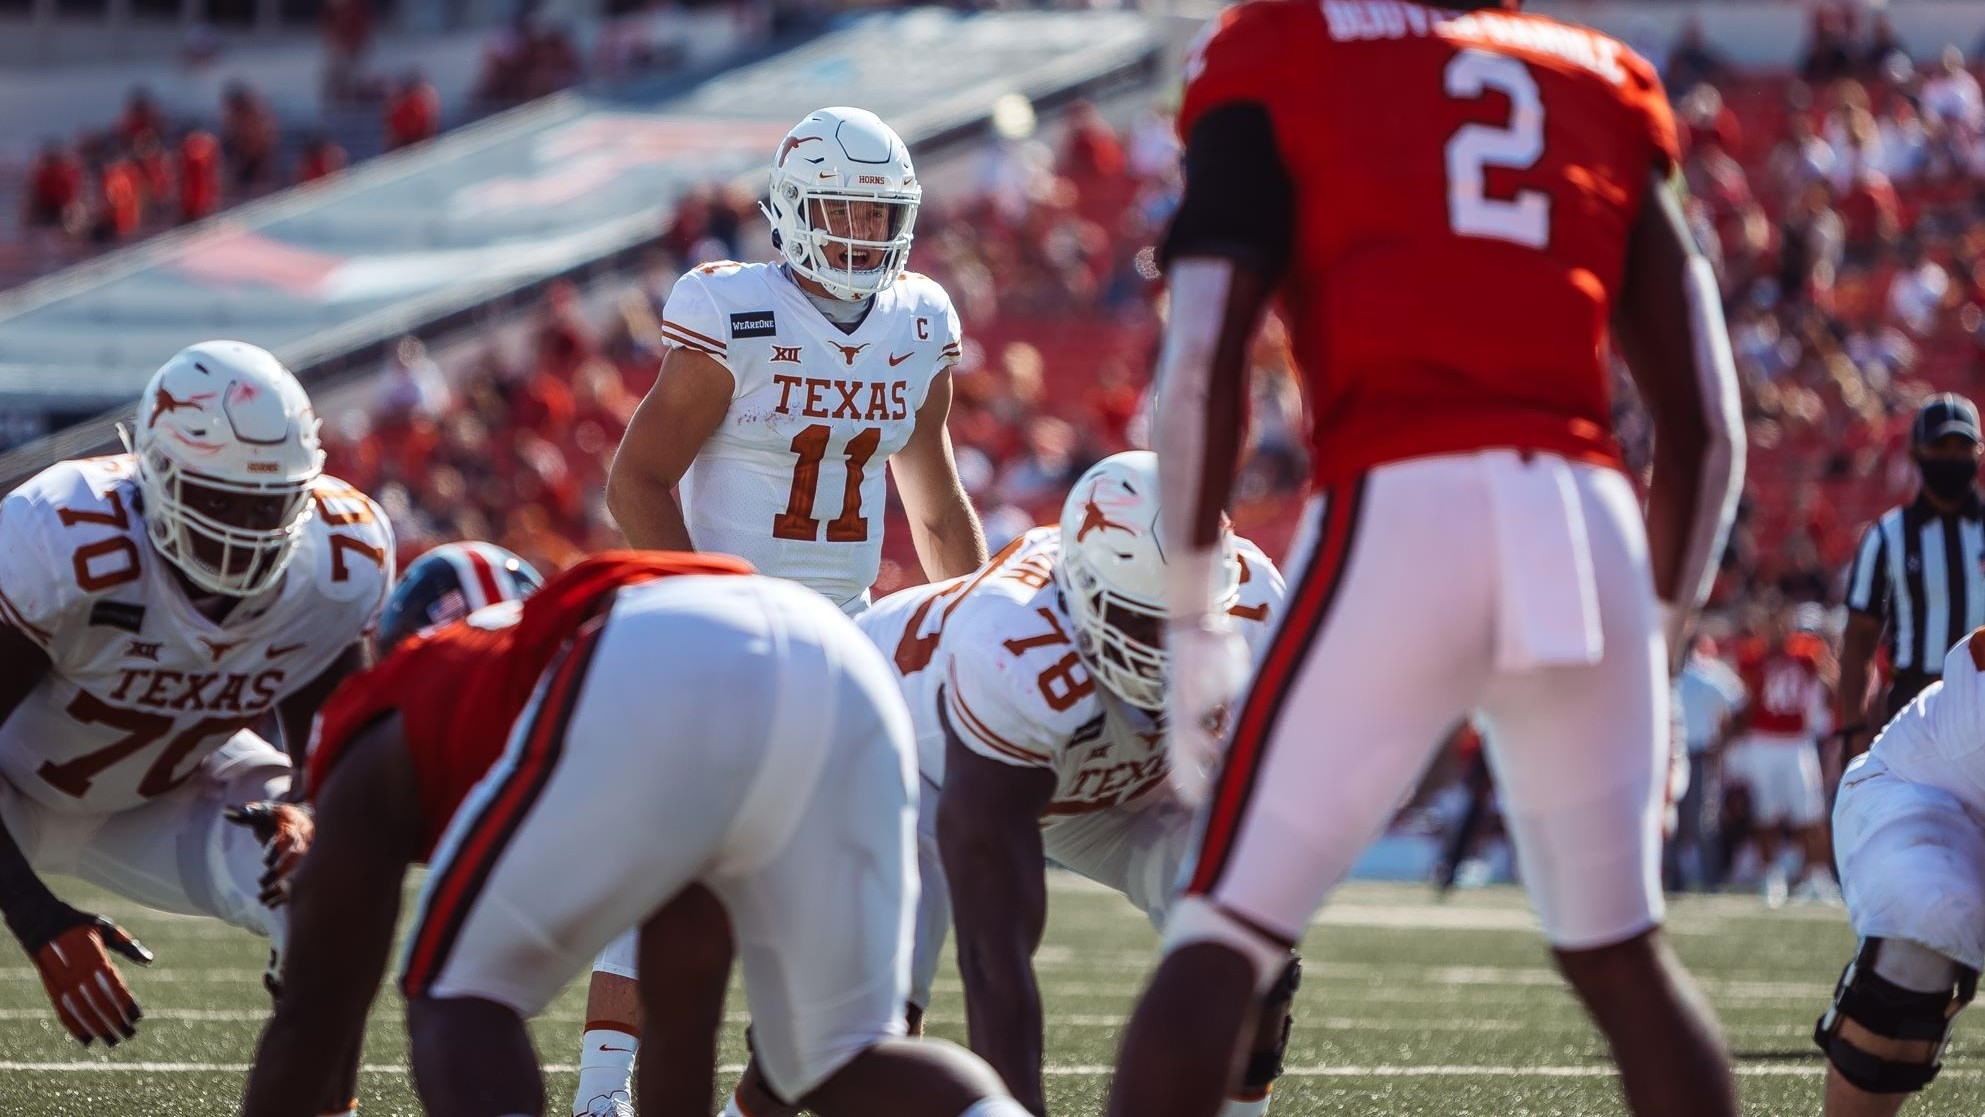 No 8 9 Football Rallies To Best Texas Tech 63 56 In Overtime University Of Texas Athletics